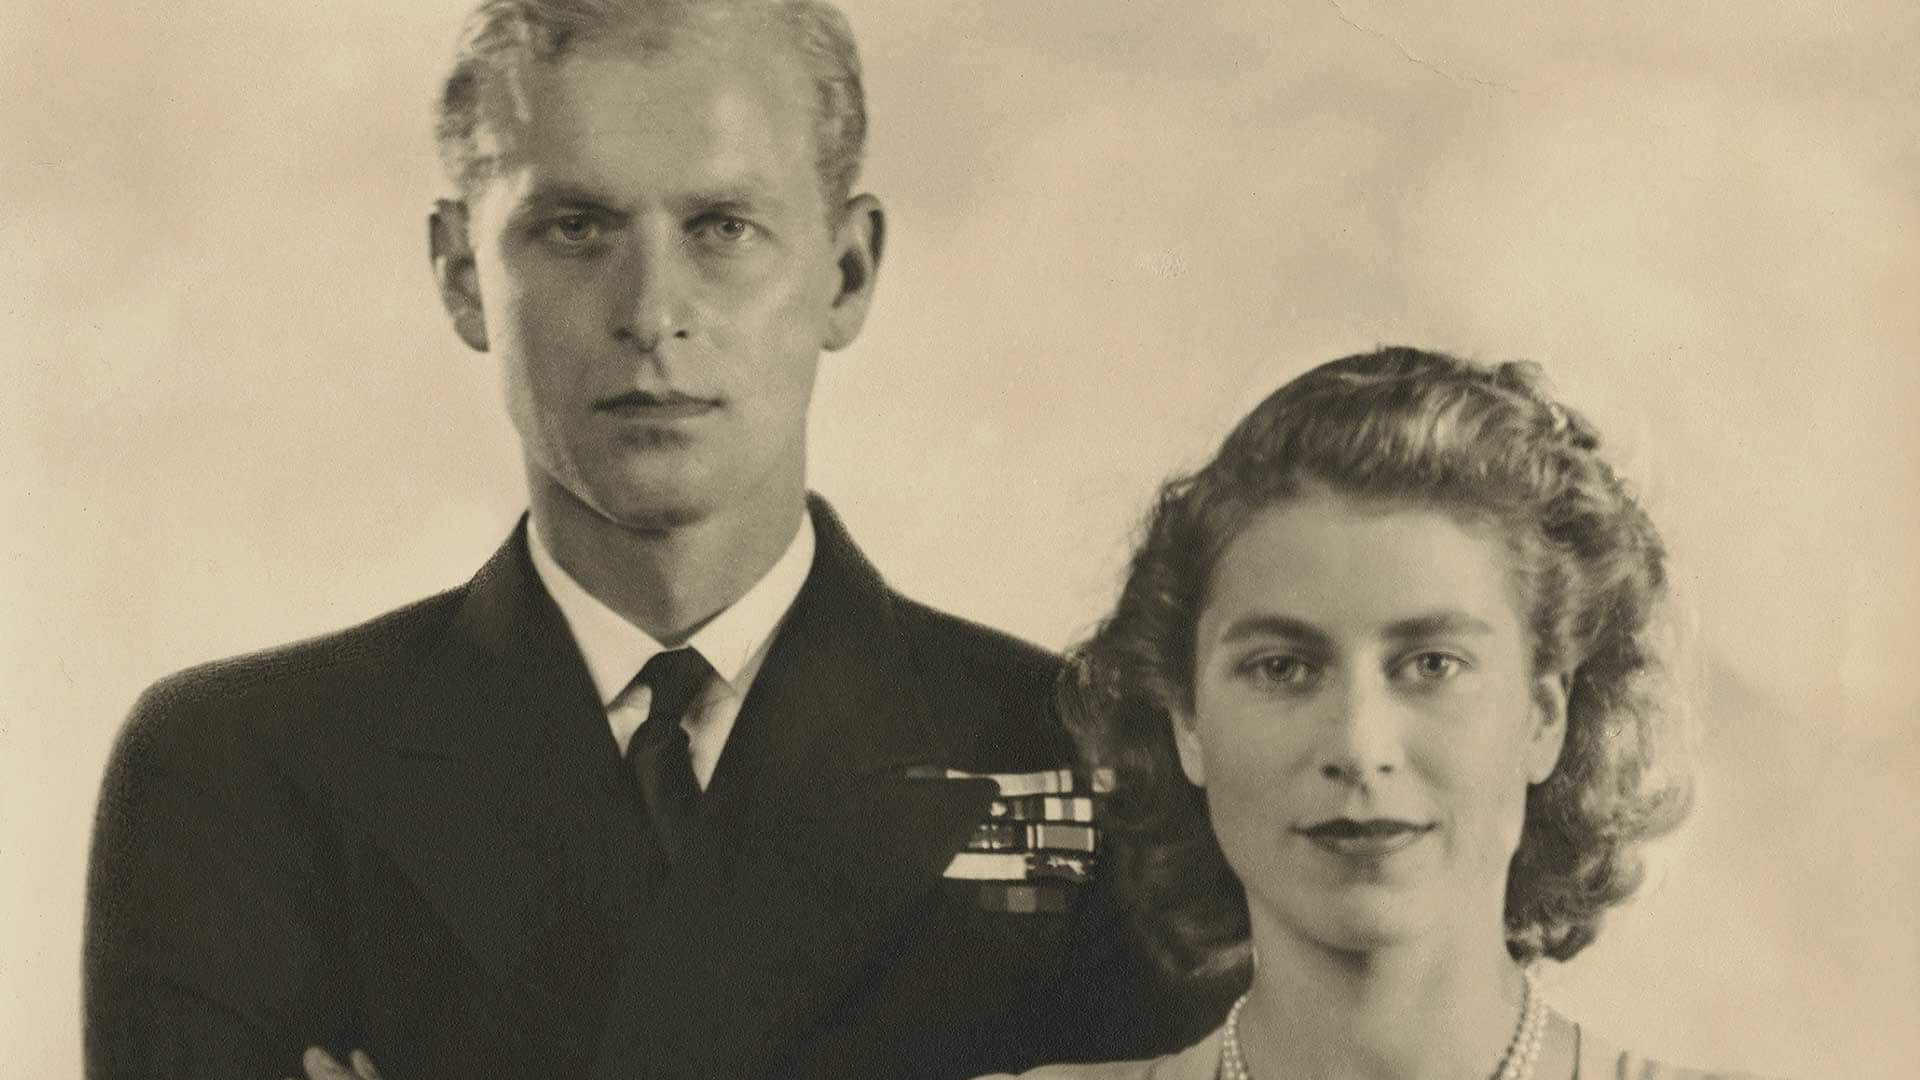 Prince Philip: The Plot to Make a King | The Passionate Eye